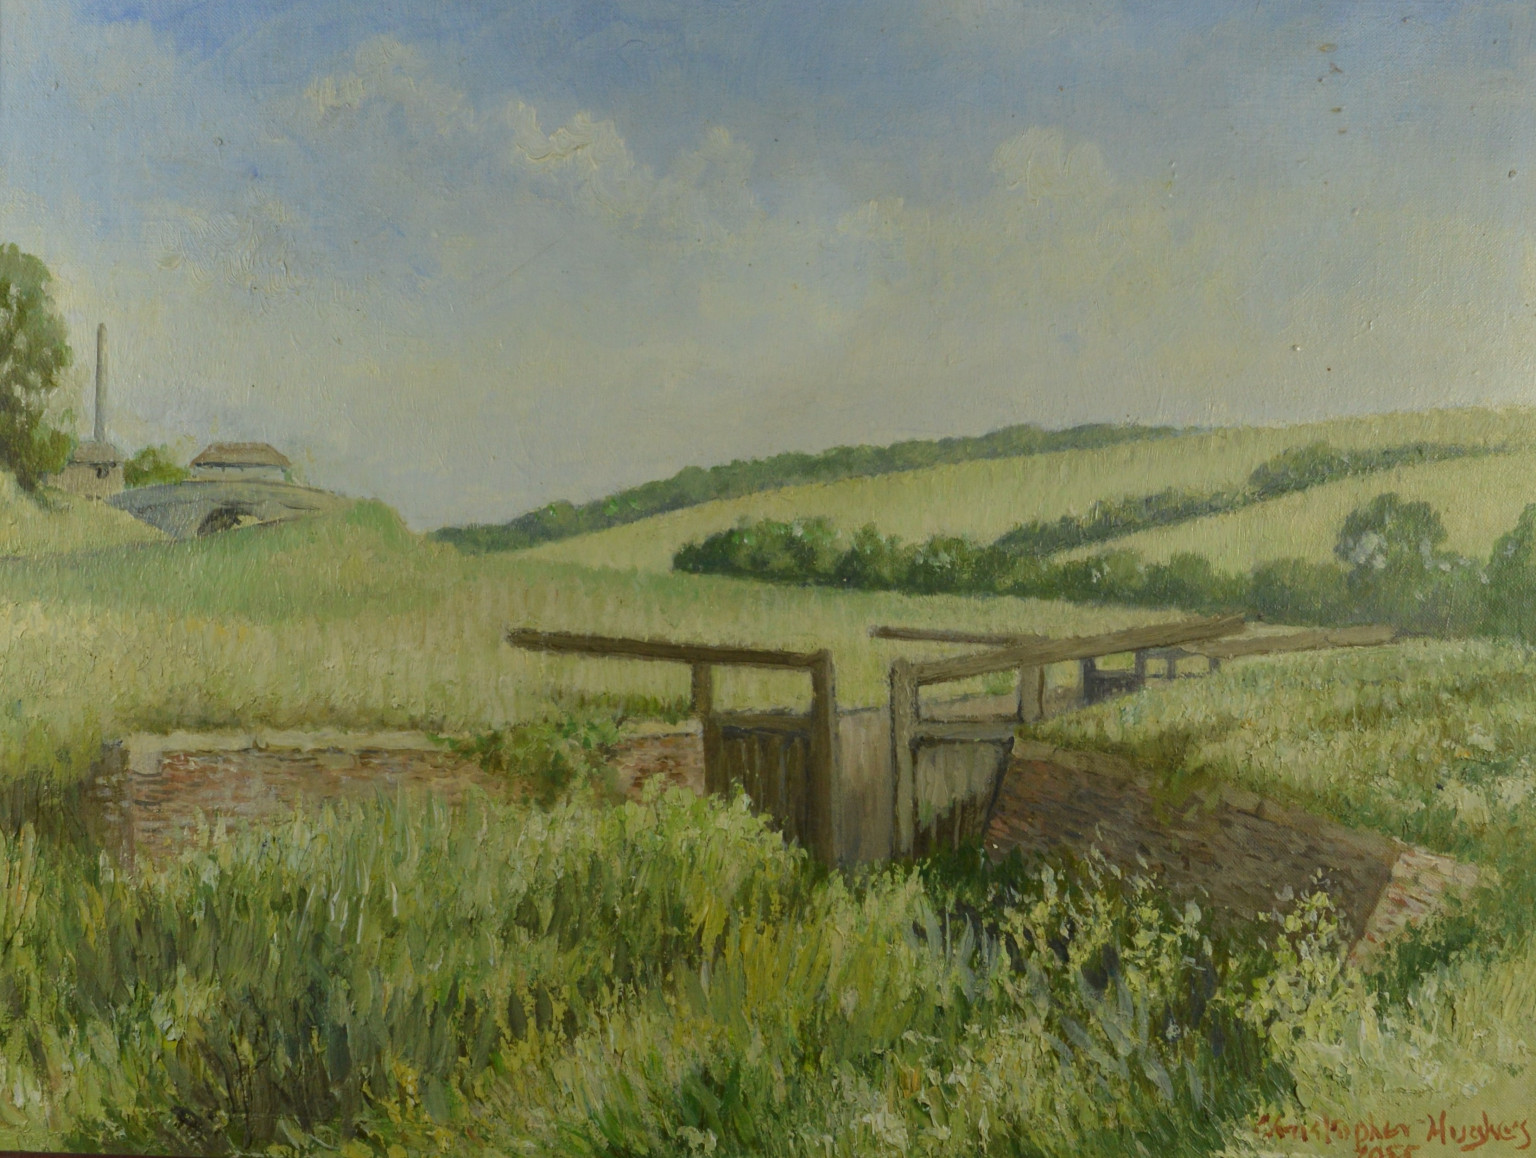 Crofton Lock  - Framed oil on canvas: view of Crofton Lock on the Kennet and Avon Canal. with Crofton pumping station in the background, Christopher Hughes 1955